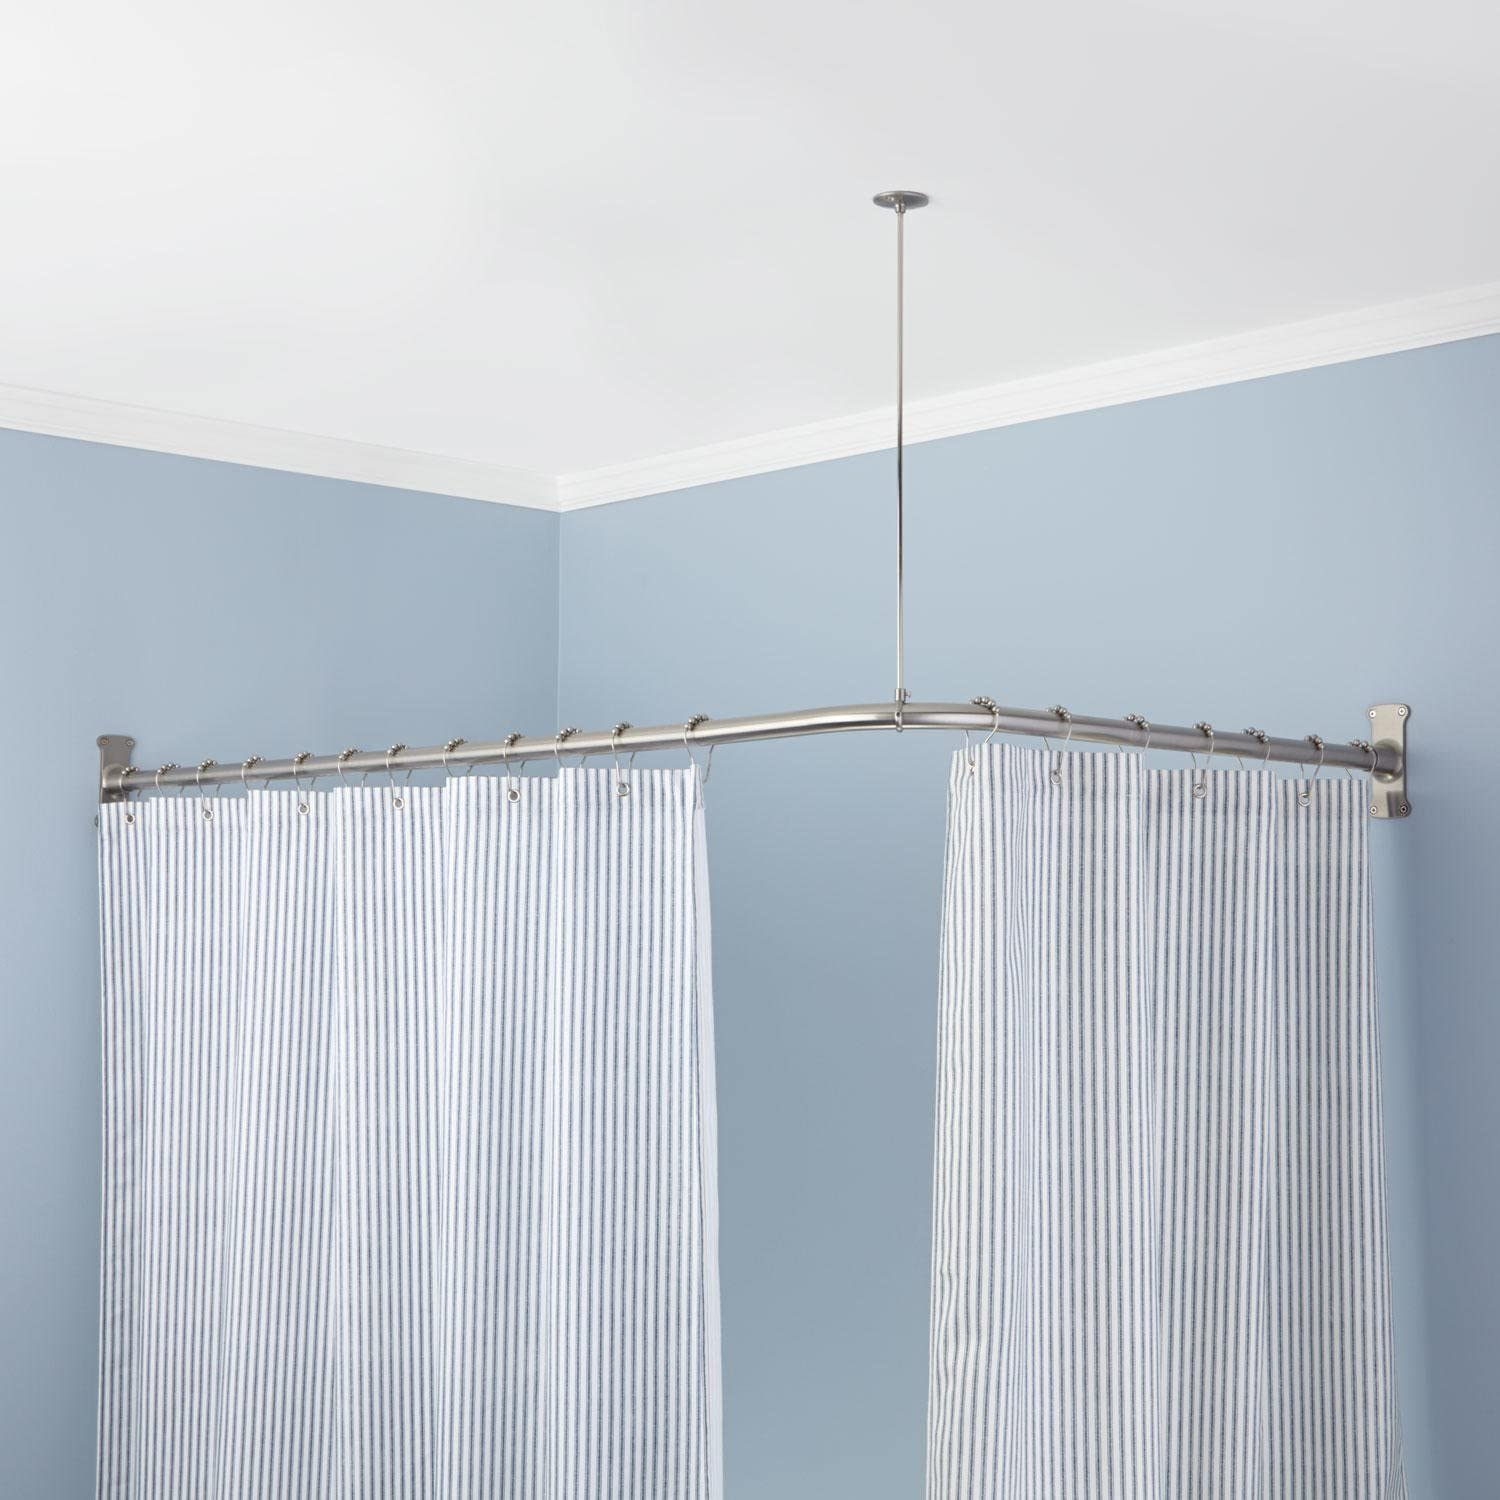 naiture stainless steel 36 x 36 corner shower curtain rod with ceiling support chrome finish